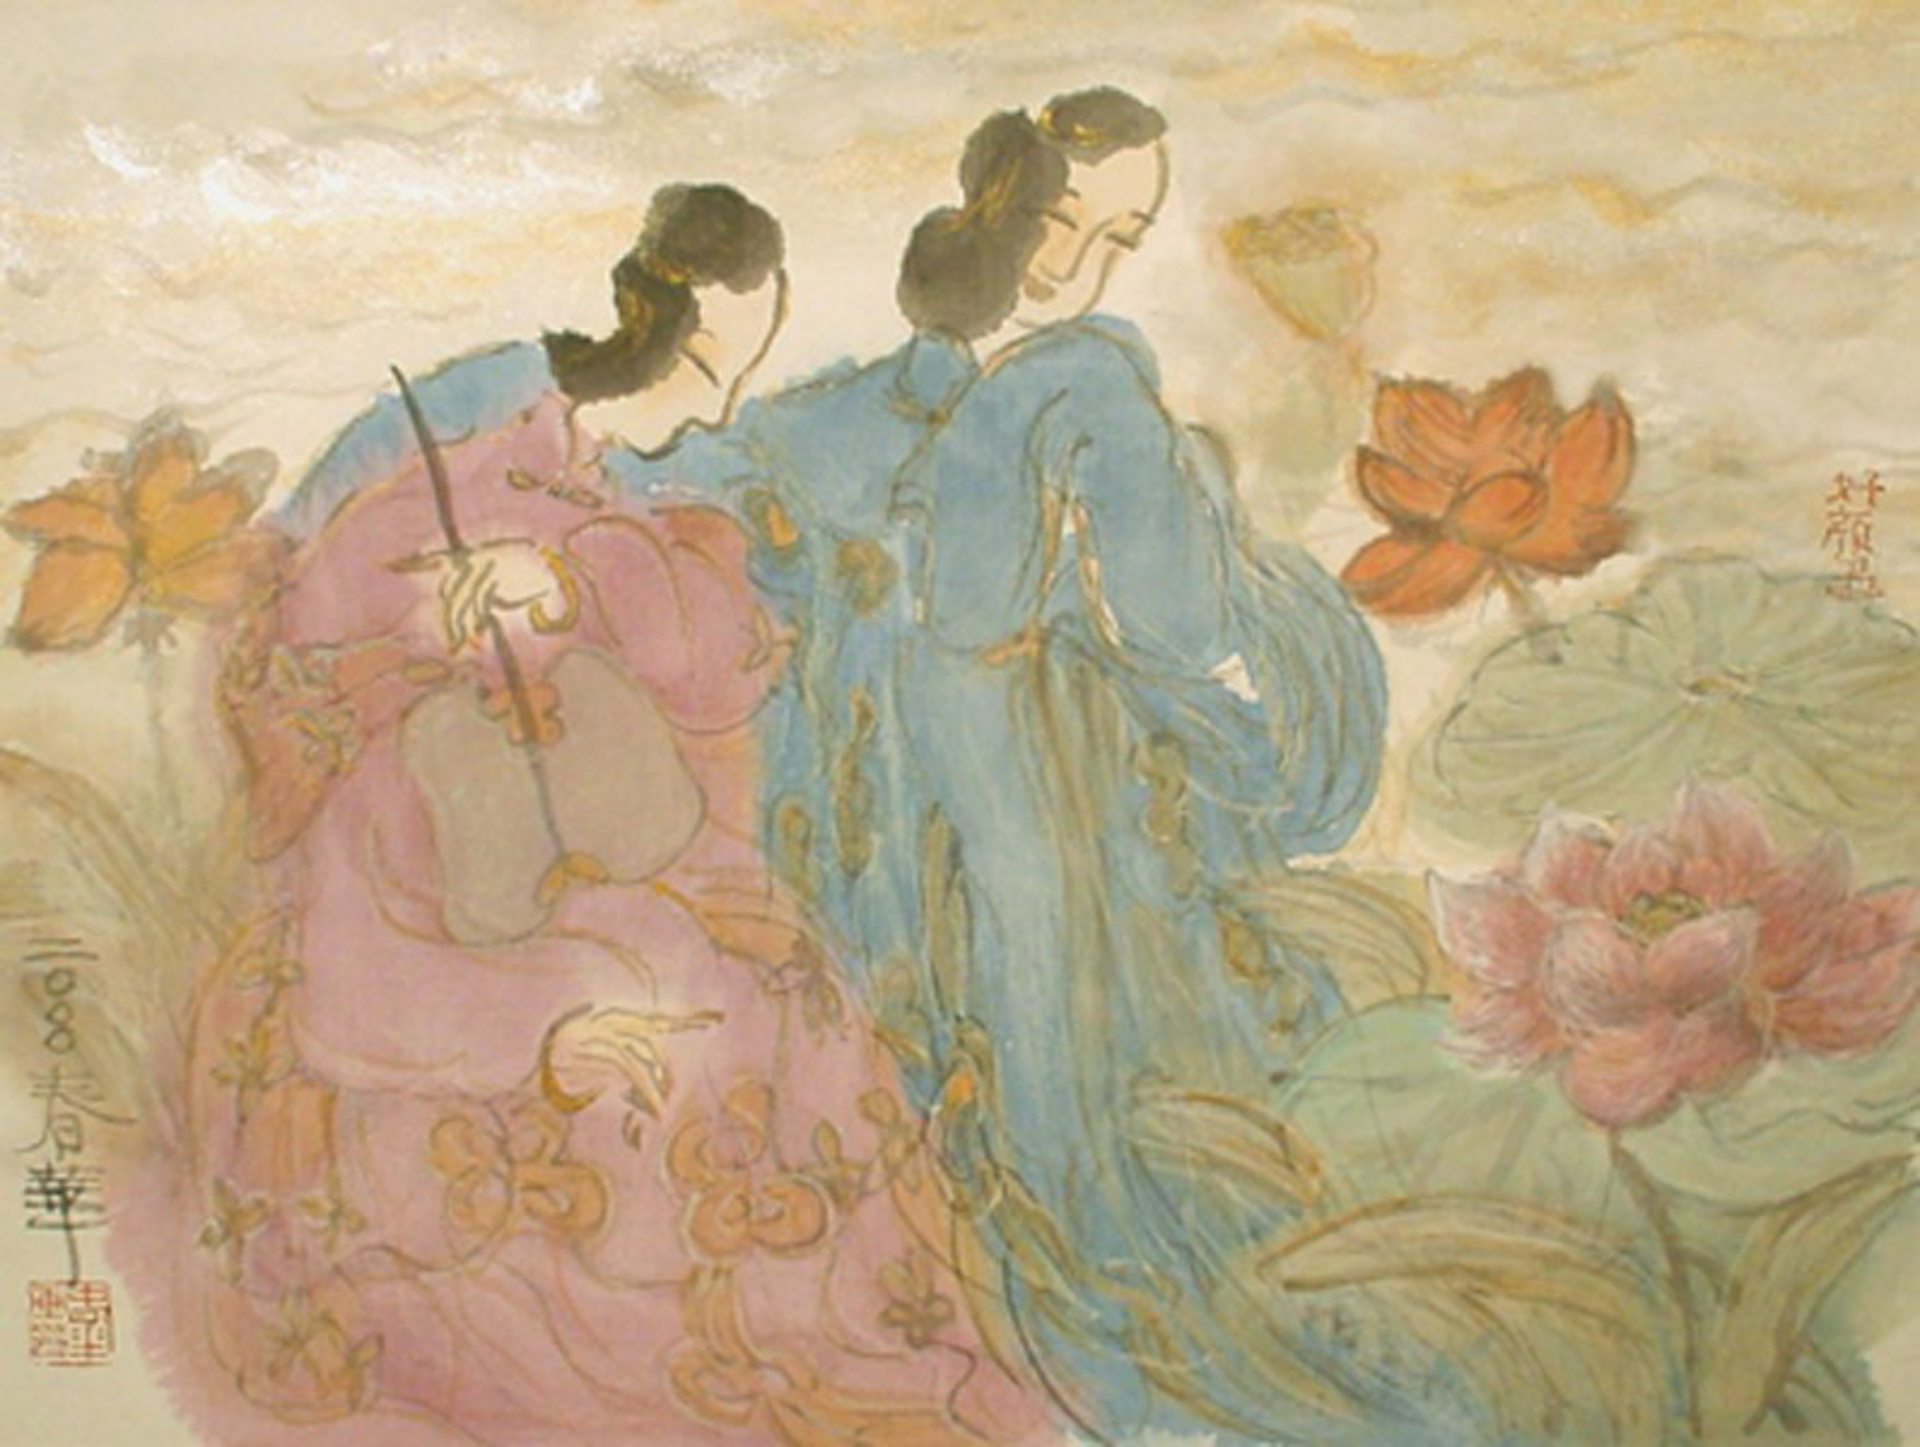 A Moment in a Spring Day #5 by Contemporary Chinese Art